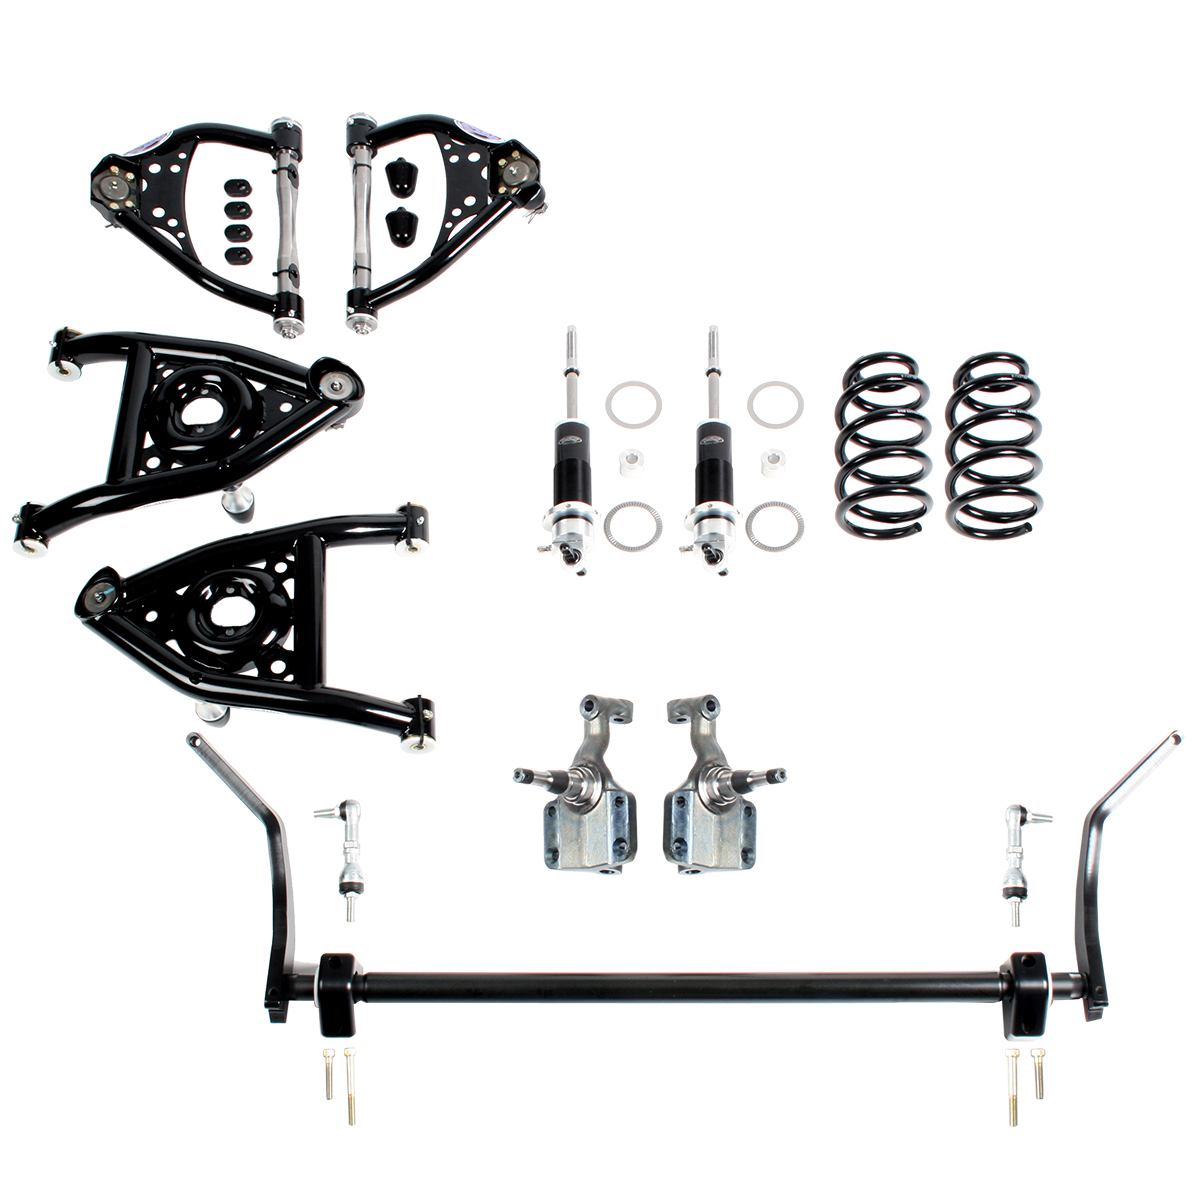 Detroit Speed  Speed Kit 2 Front Suspension Kit with Splined Sway Bar  Double Adjustable Shocks 1964-1966 A-Body SBC LS